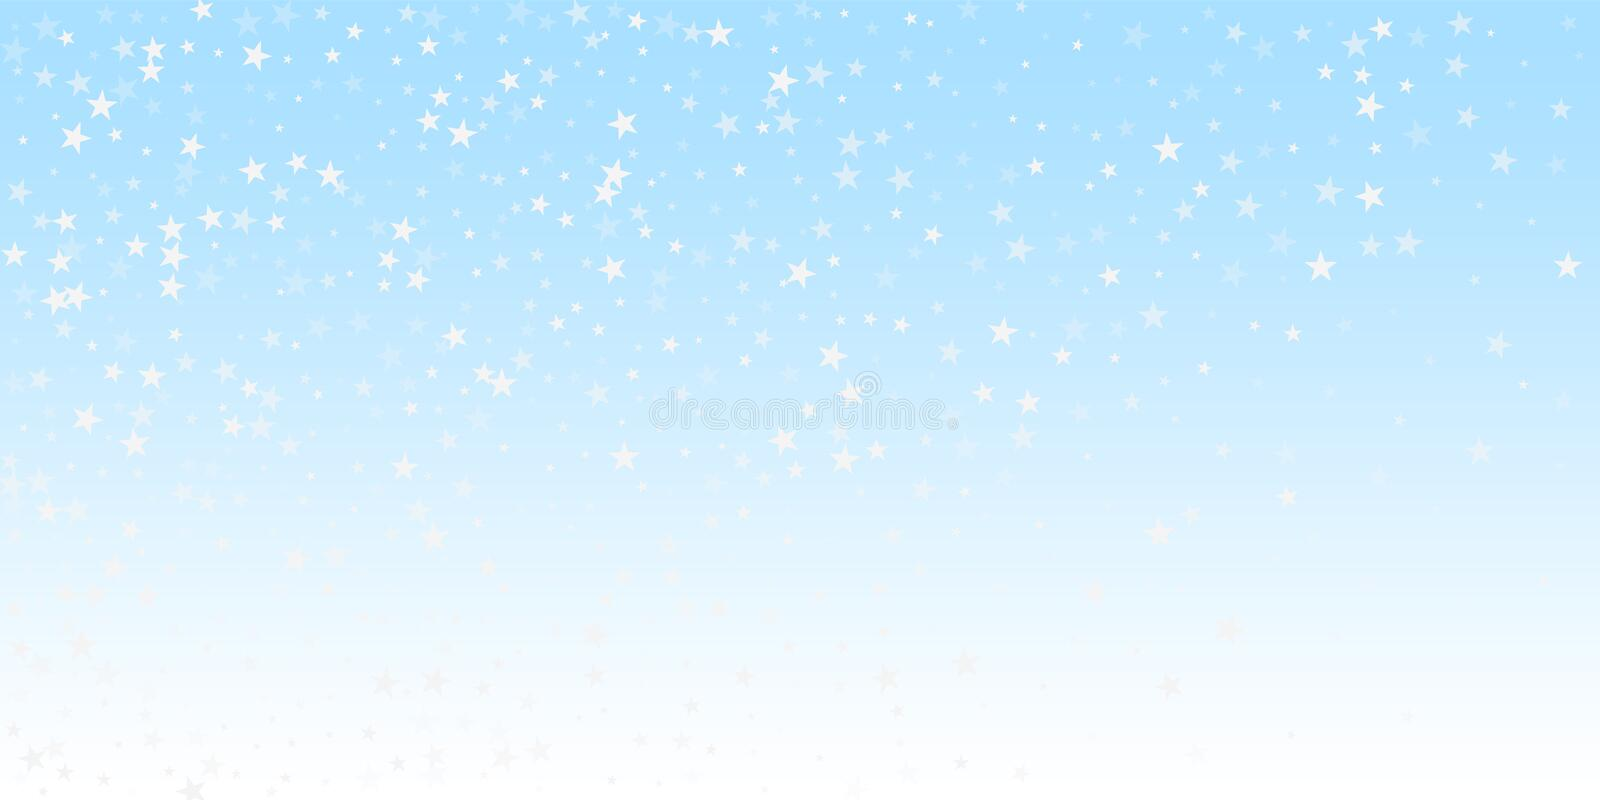 Random falling stars Christmas background. Subtle. Flying snow flakes and stars on winter sky background. Beautiful winter silver snowflake overlay template stock illustration